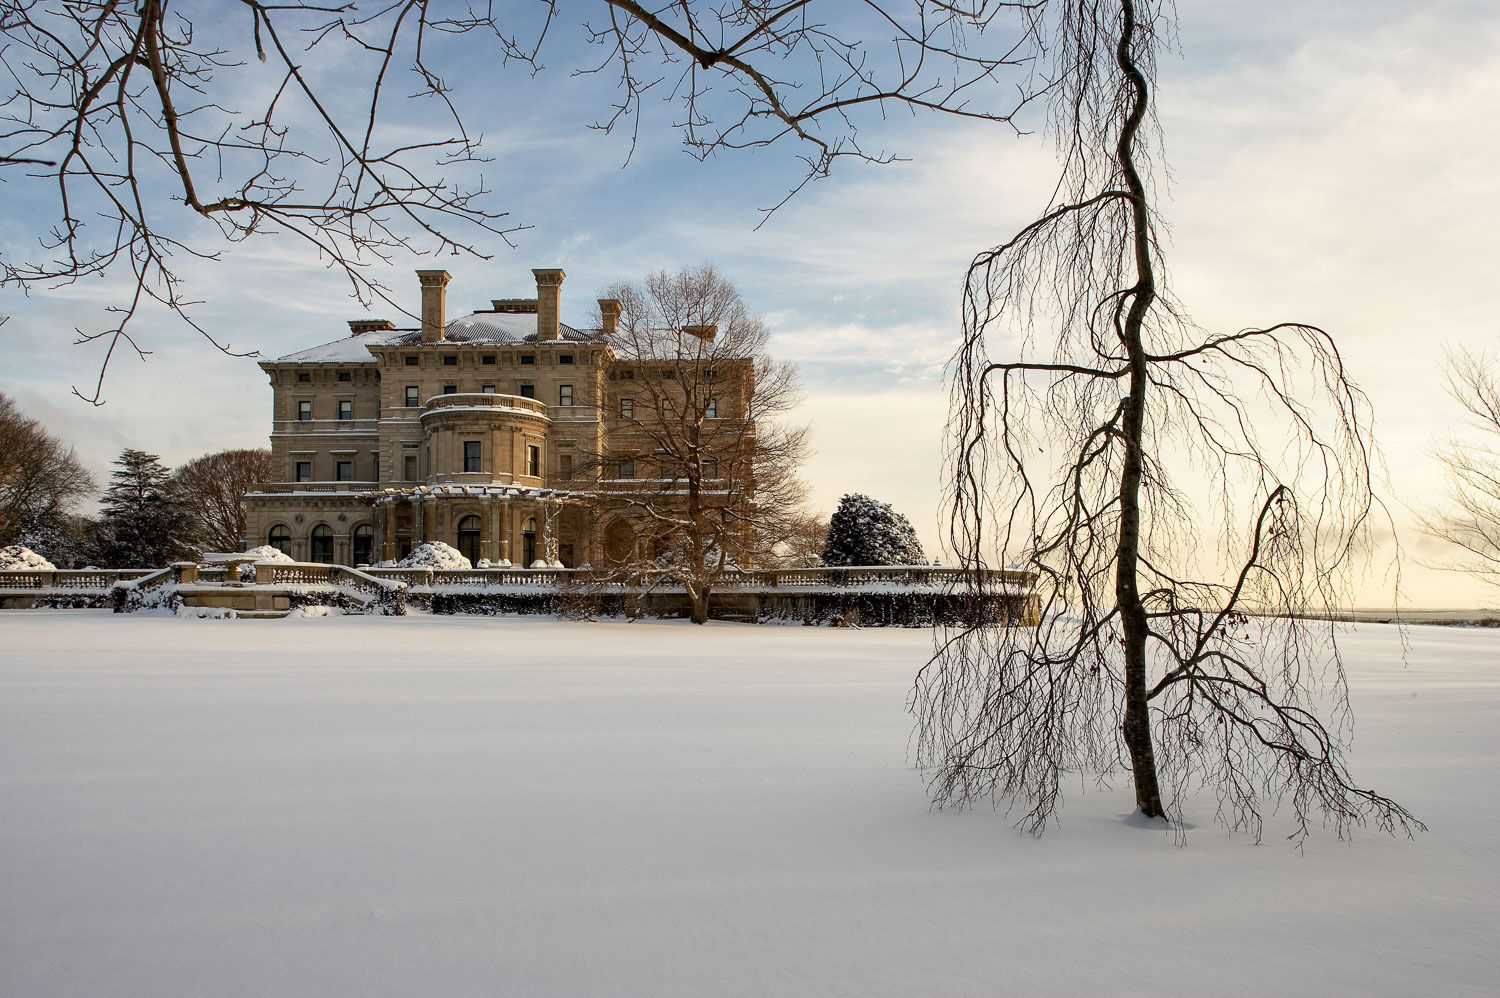 The Breakers on a snowy day